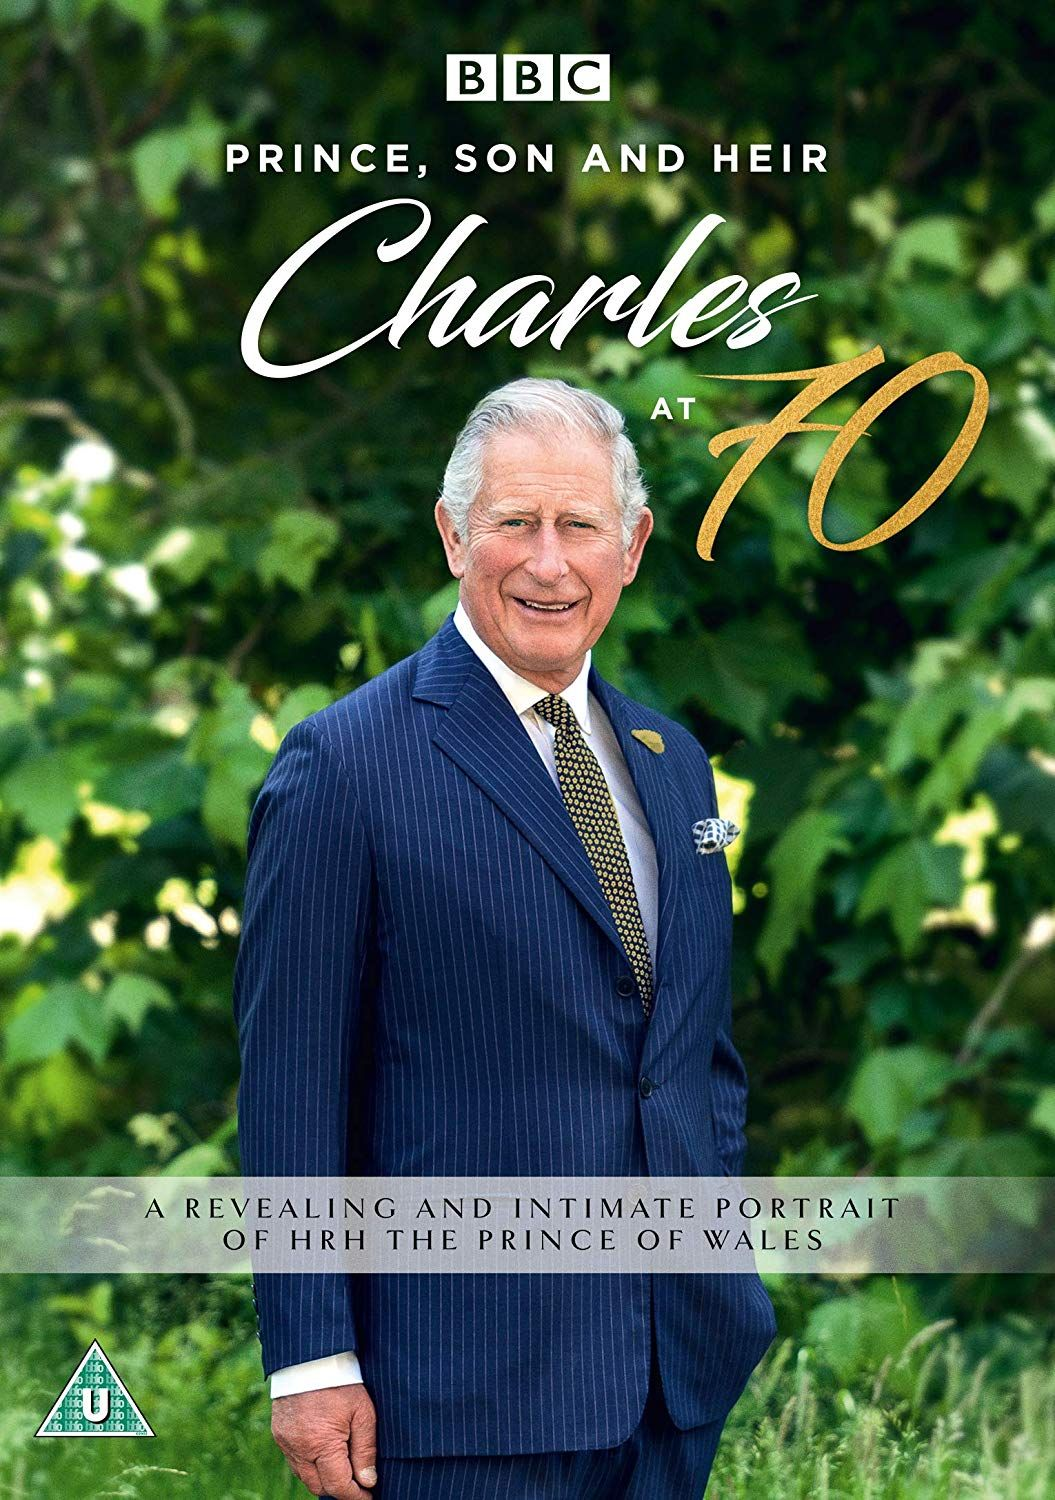 Prince Son And Heir Charles At 70 Dvd 2018 Amazon Co Uk